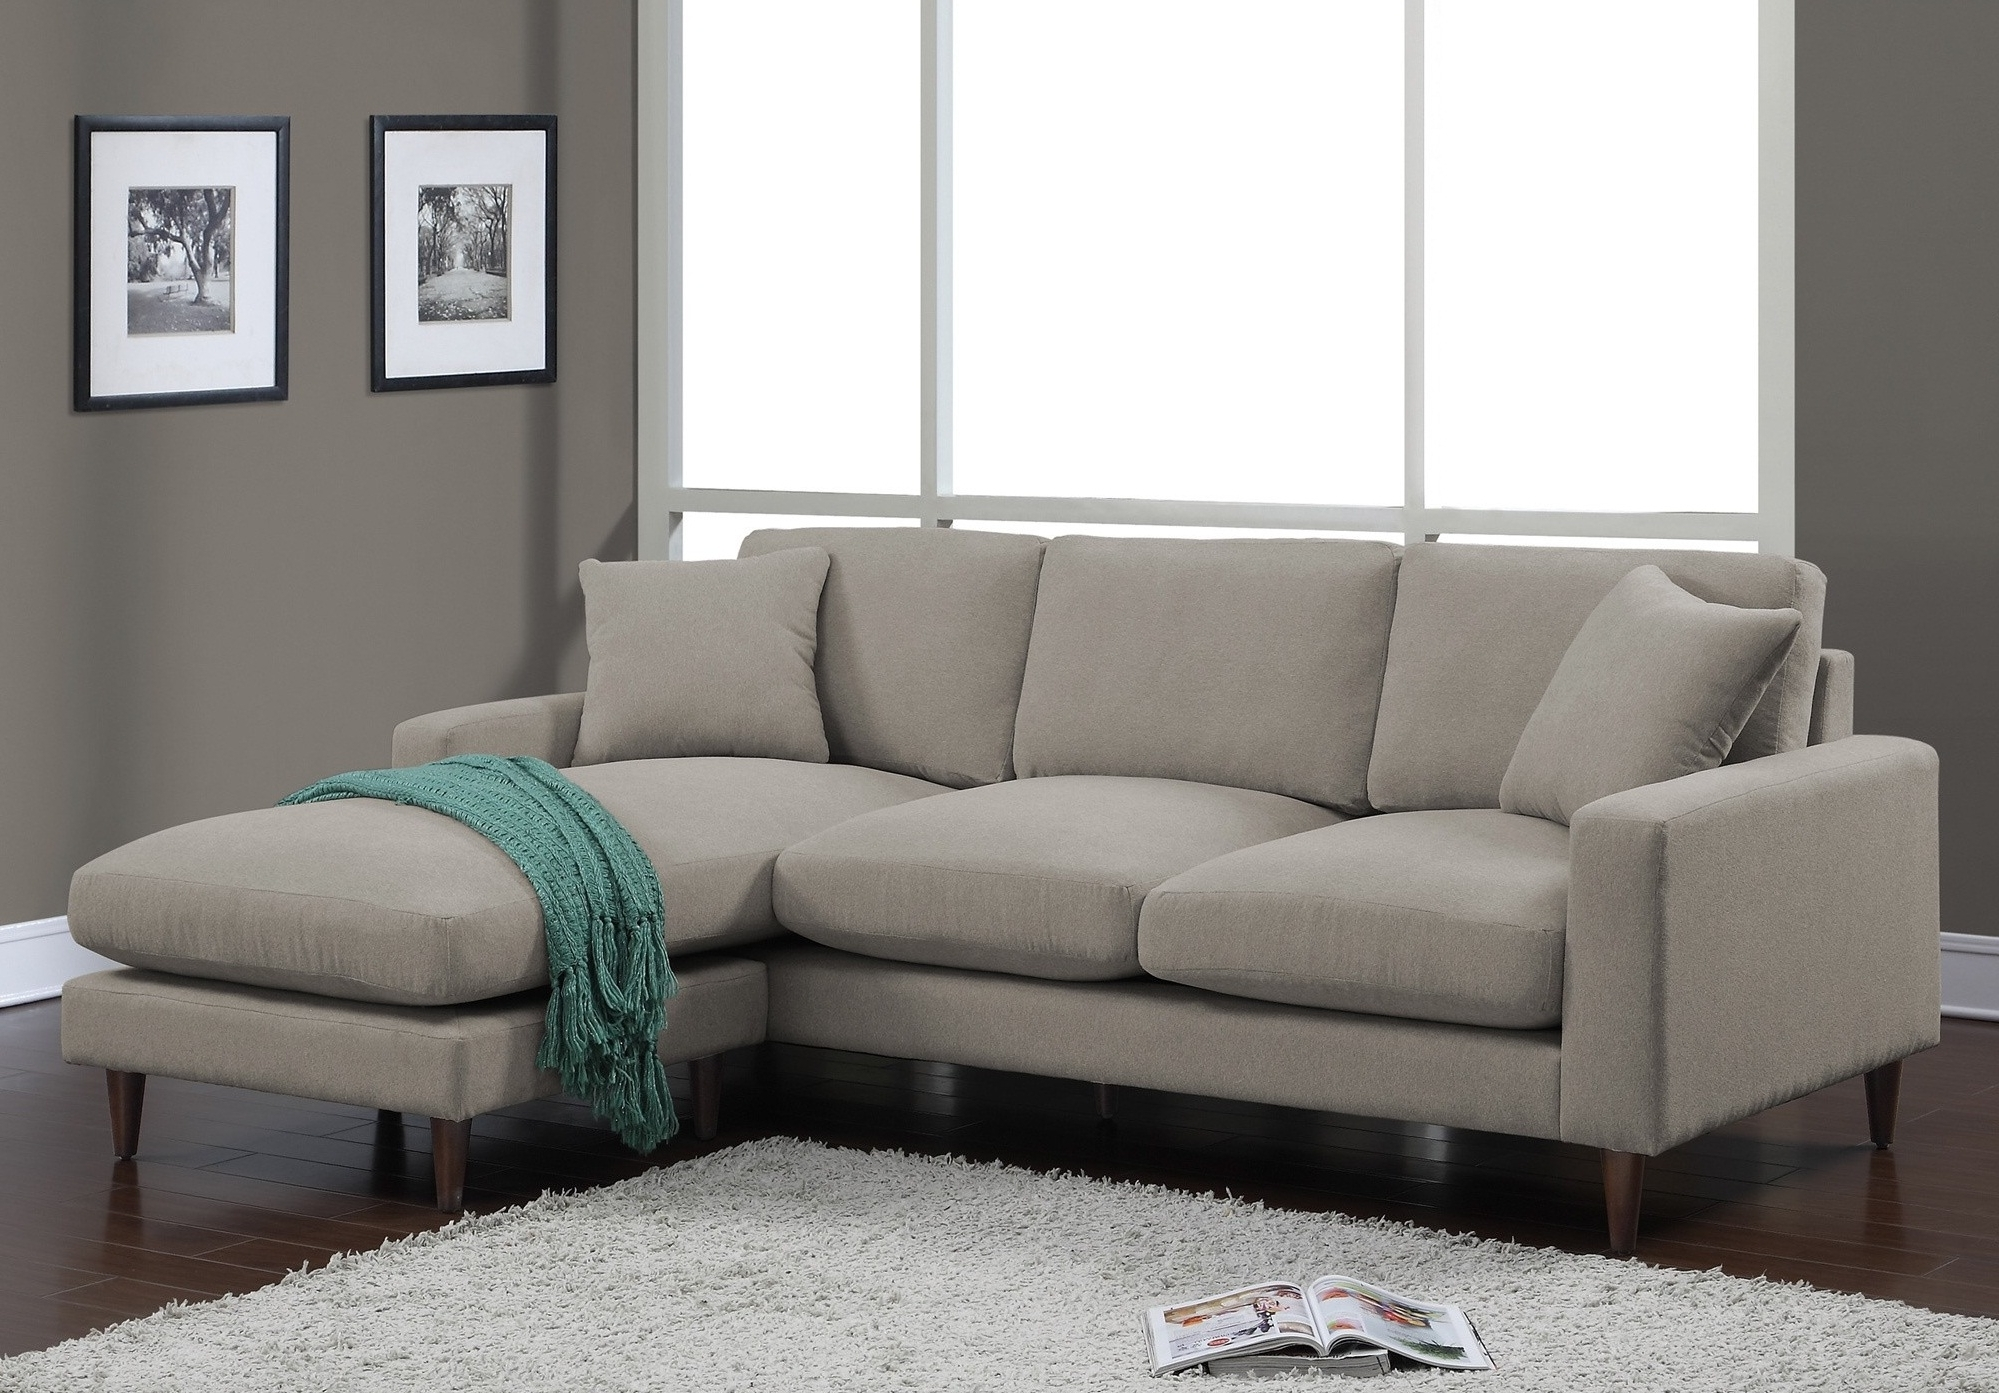 Image Gallery Of Target Sectional Sofas